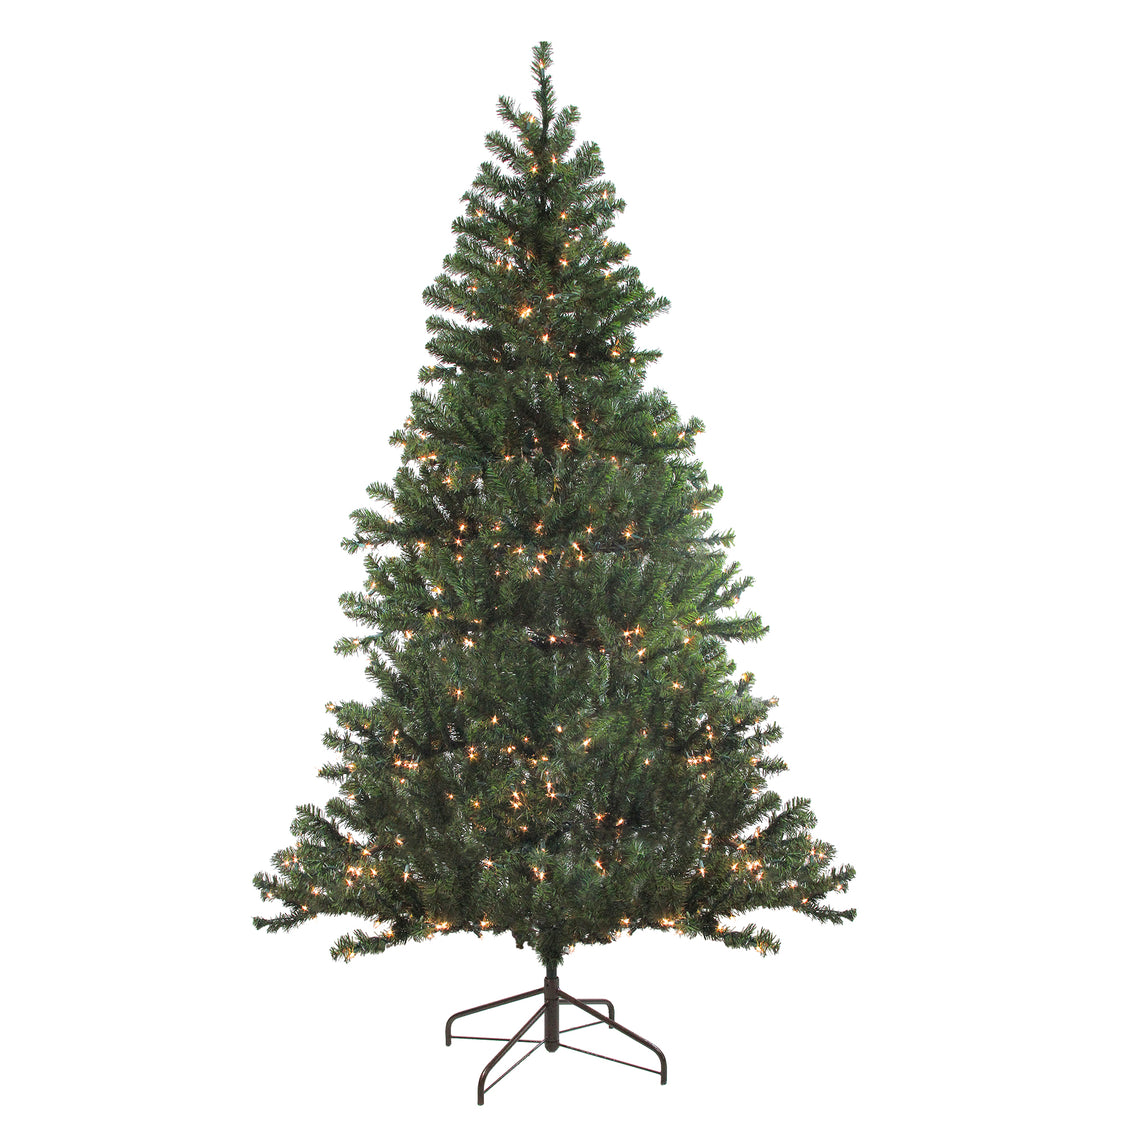 7' Pre-Lit Balsam Pine Artificial Christmas Tree - Clear Lights